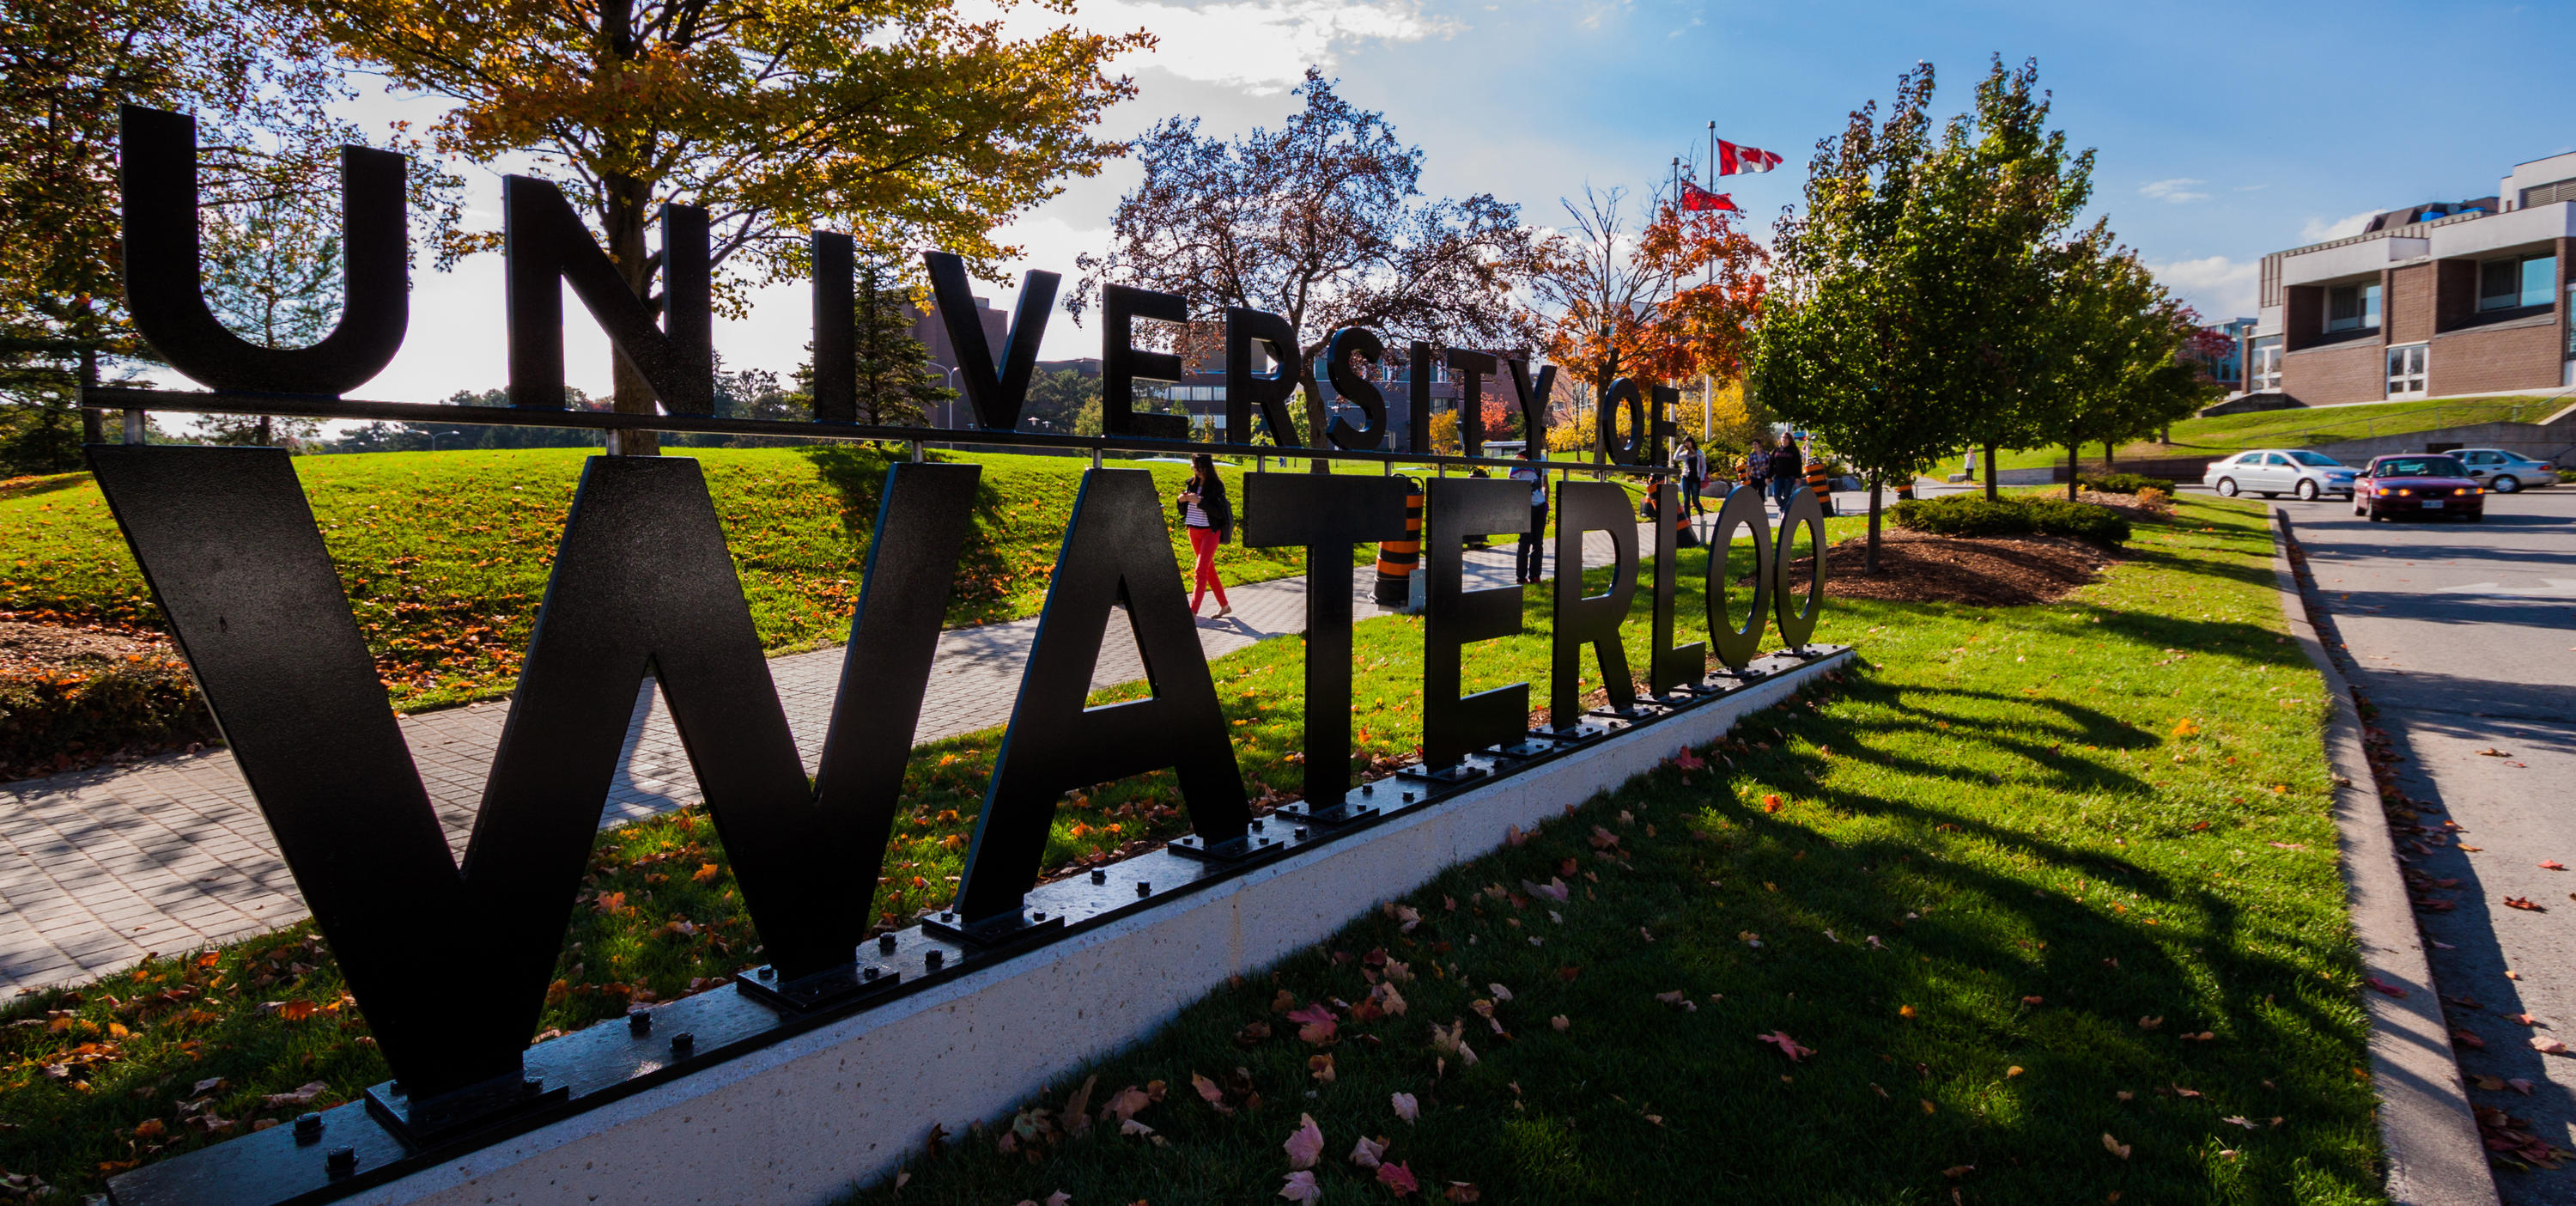 Steel University of Waterloo sign by campus entrance